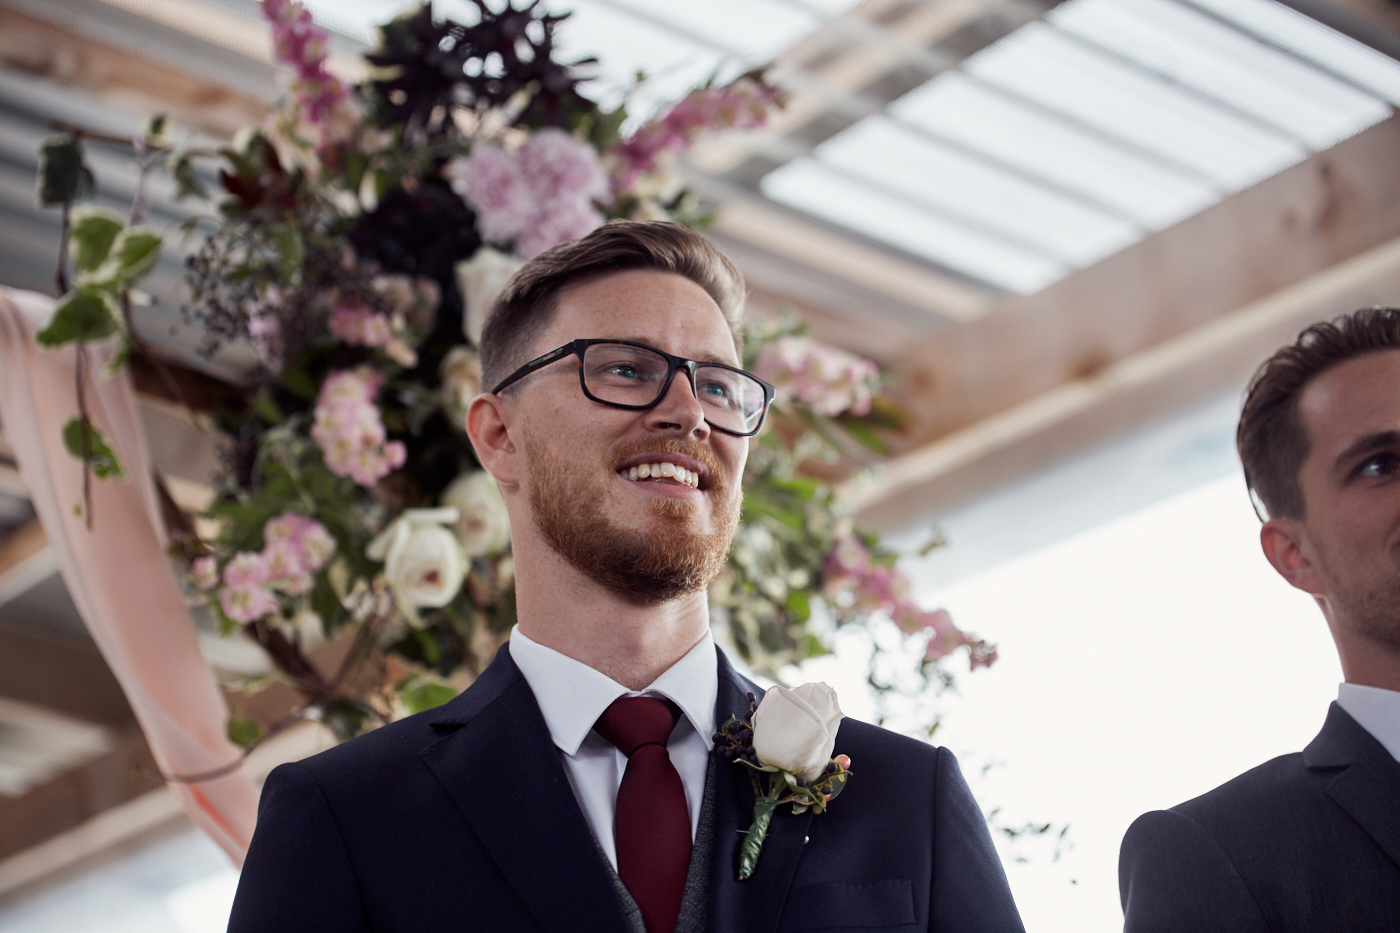 Groom smiling at his bride